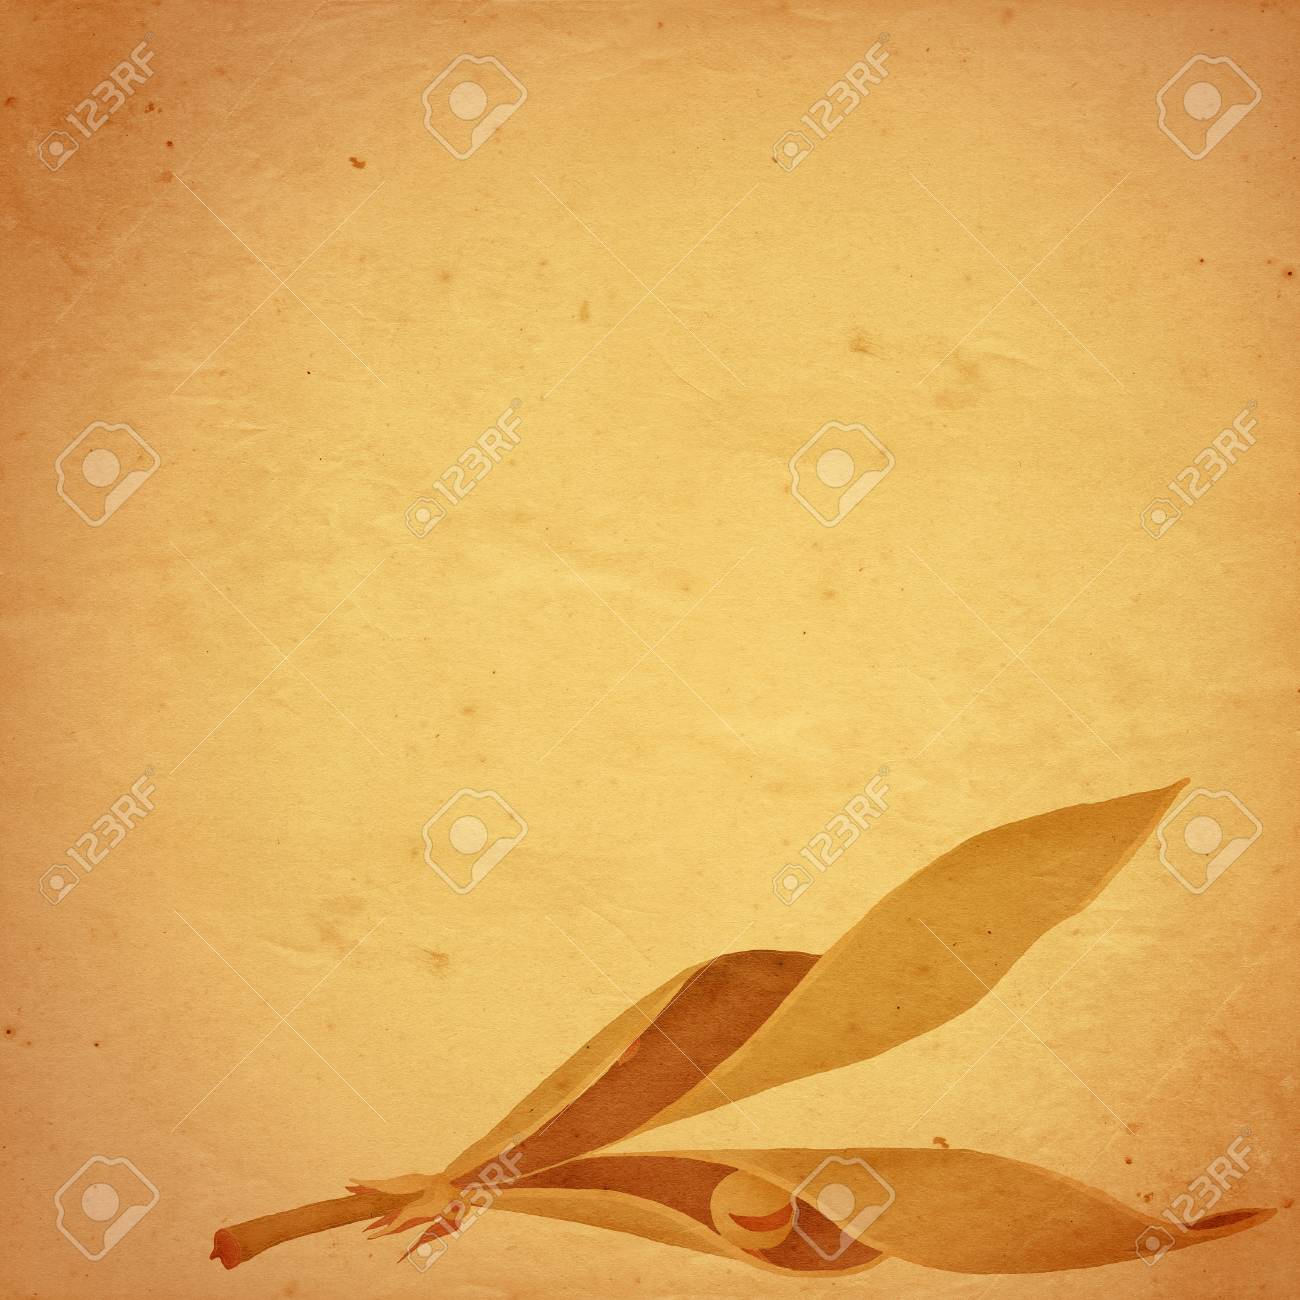 old paper background with sweetpea pod with one last pea remaining Stock Photo - 10832629